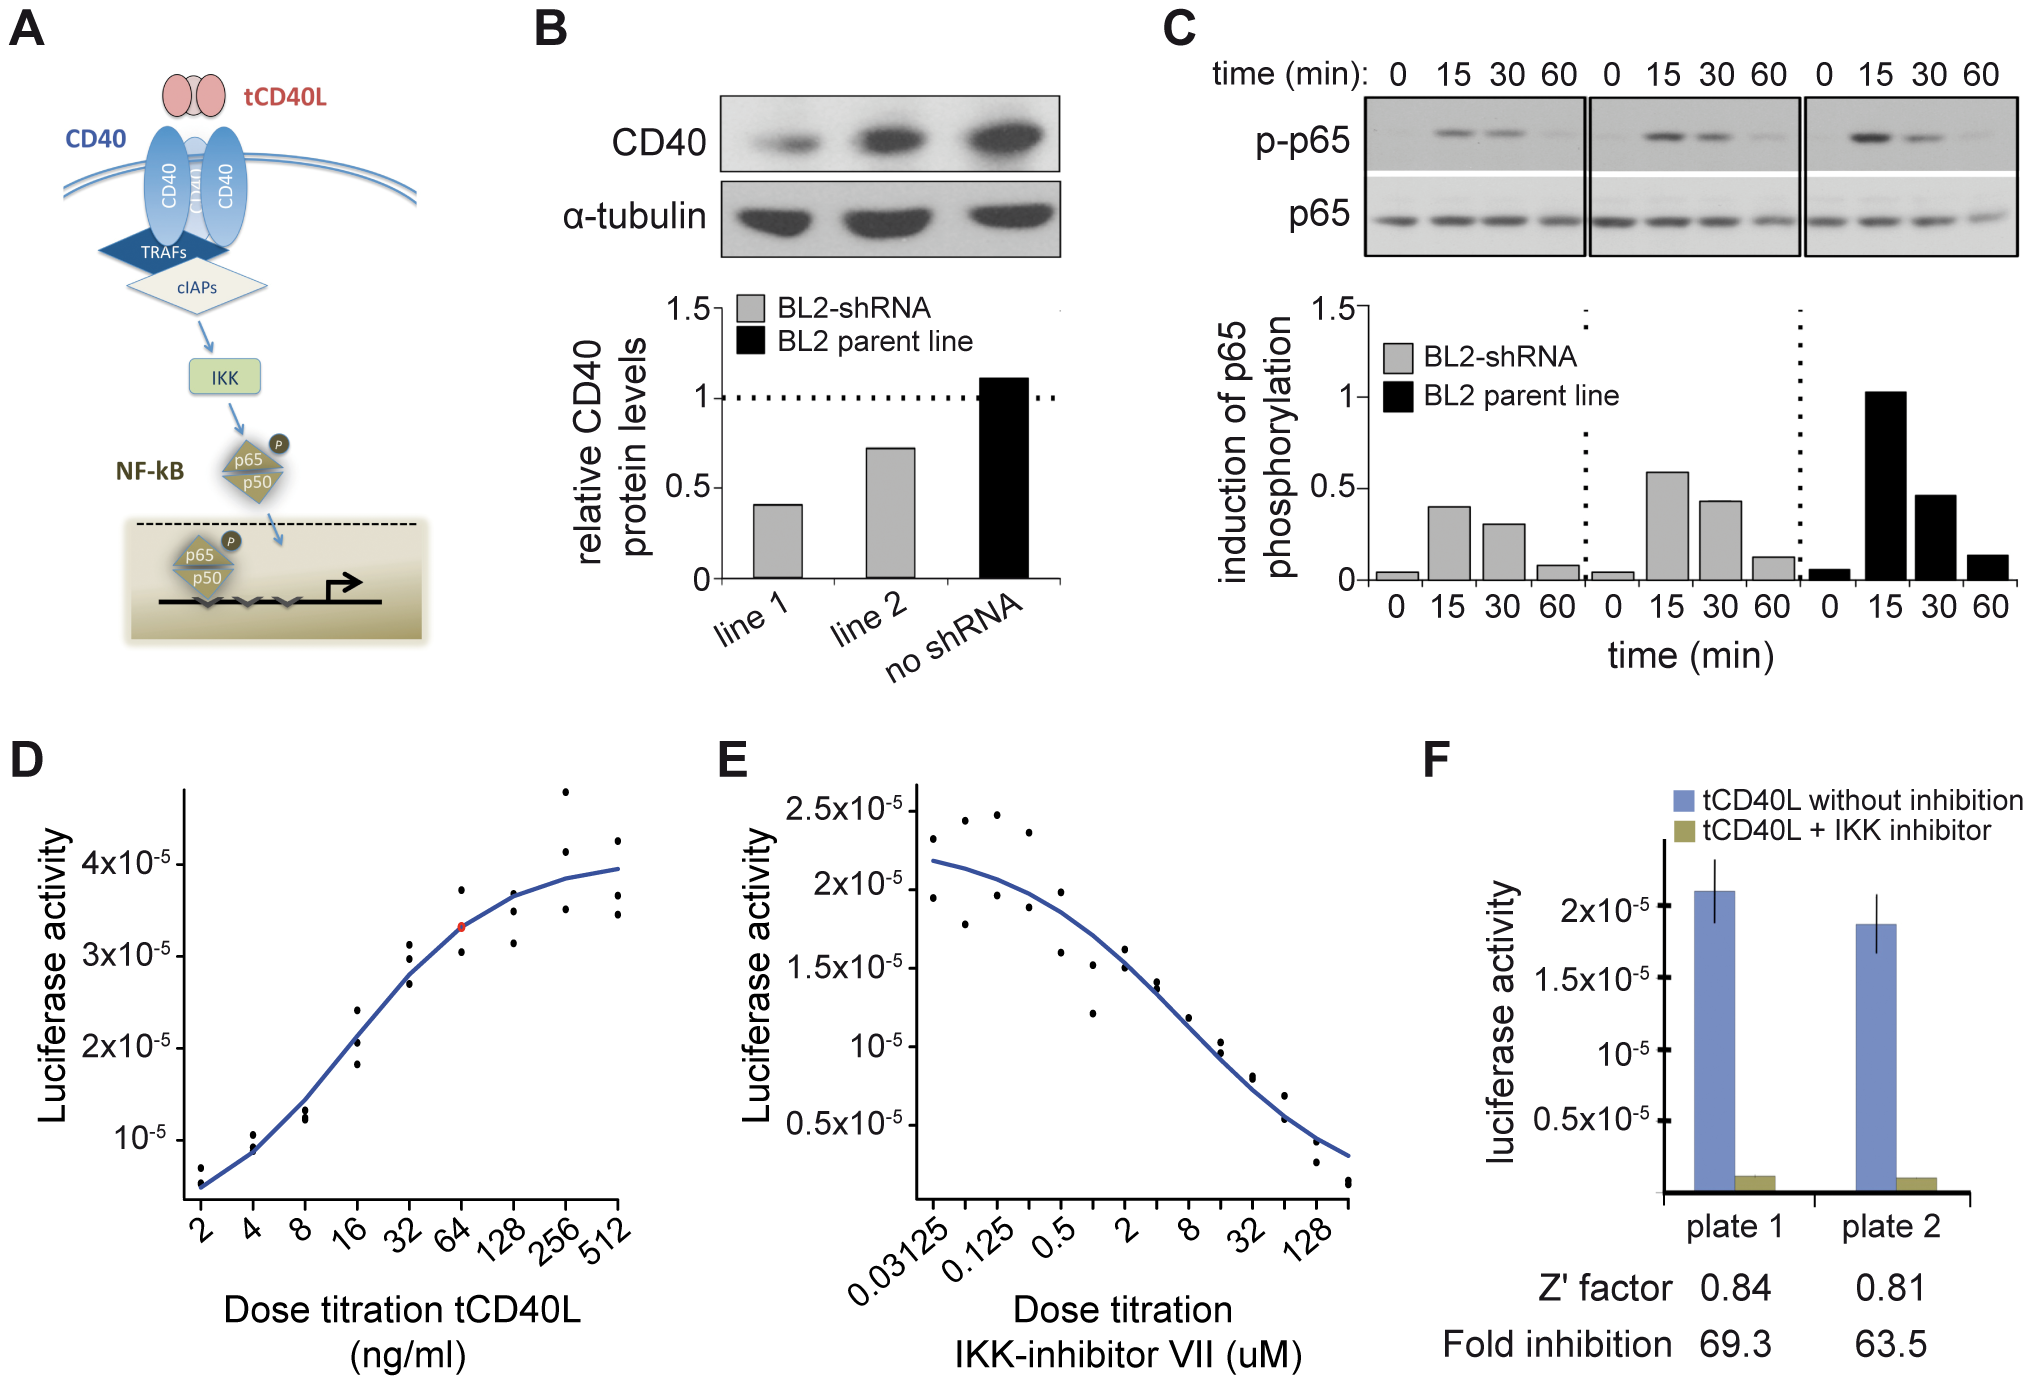 CD40 knockdown and CD40-luciferase assay in BL2 cells.